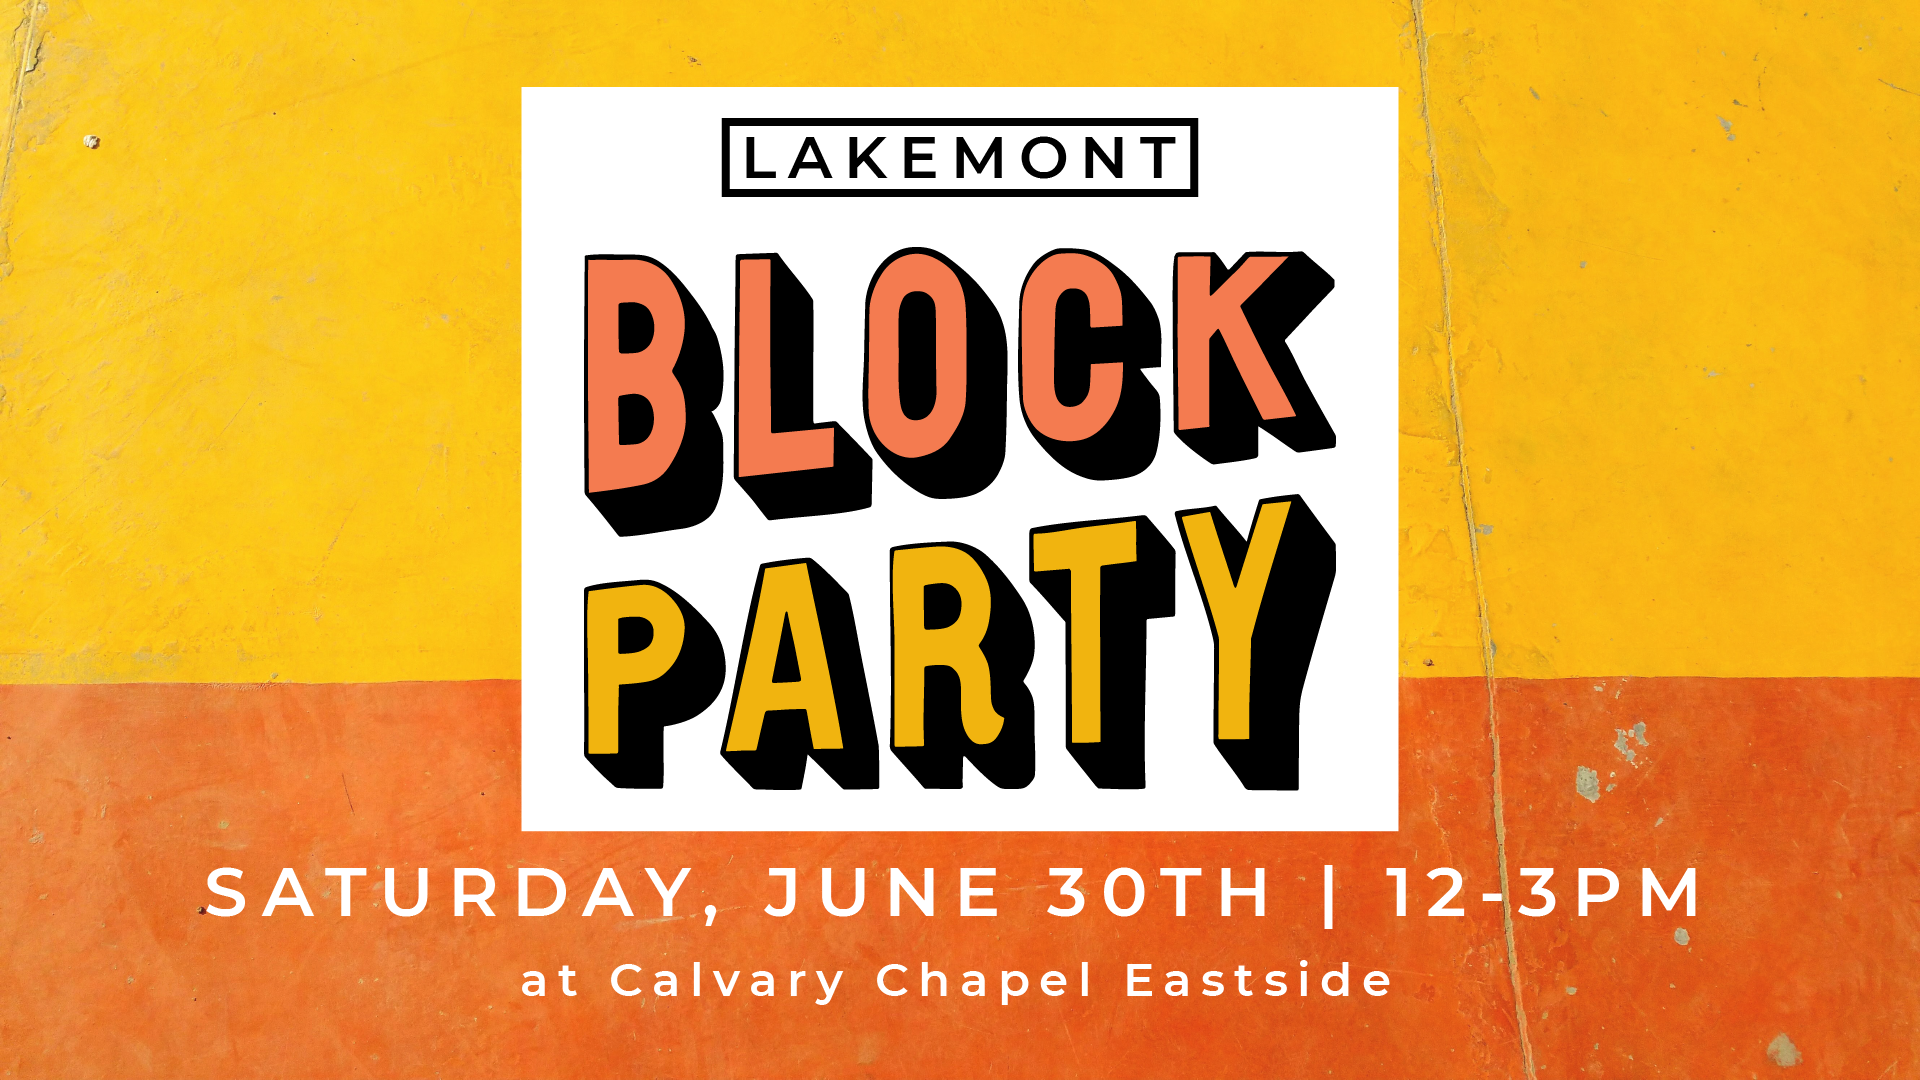 Lakemont Block Party on June 30th from 12-3pm at Calvary Chapel Eastside